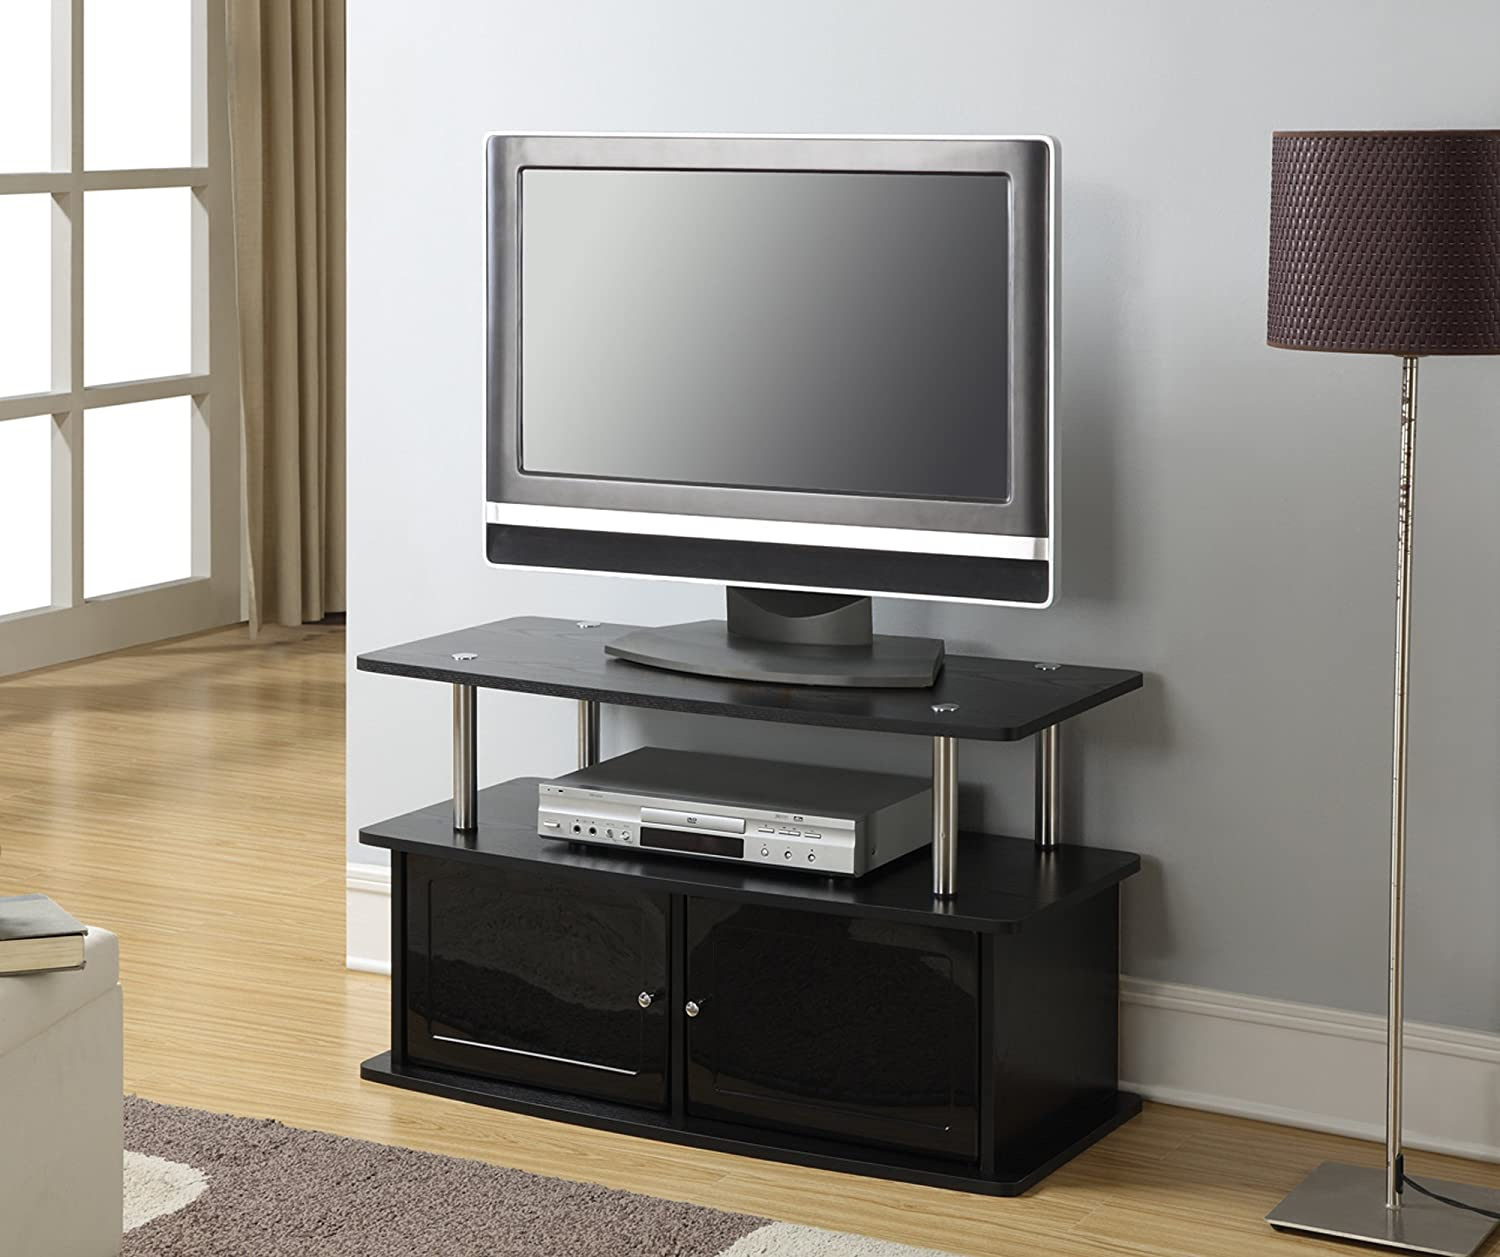 tv stand for flat panel tvs up to inch or pound new - tvstandforflatpaneltvs